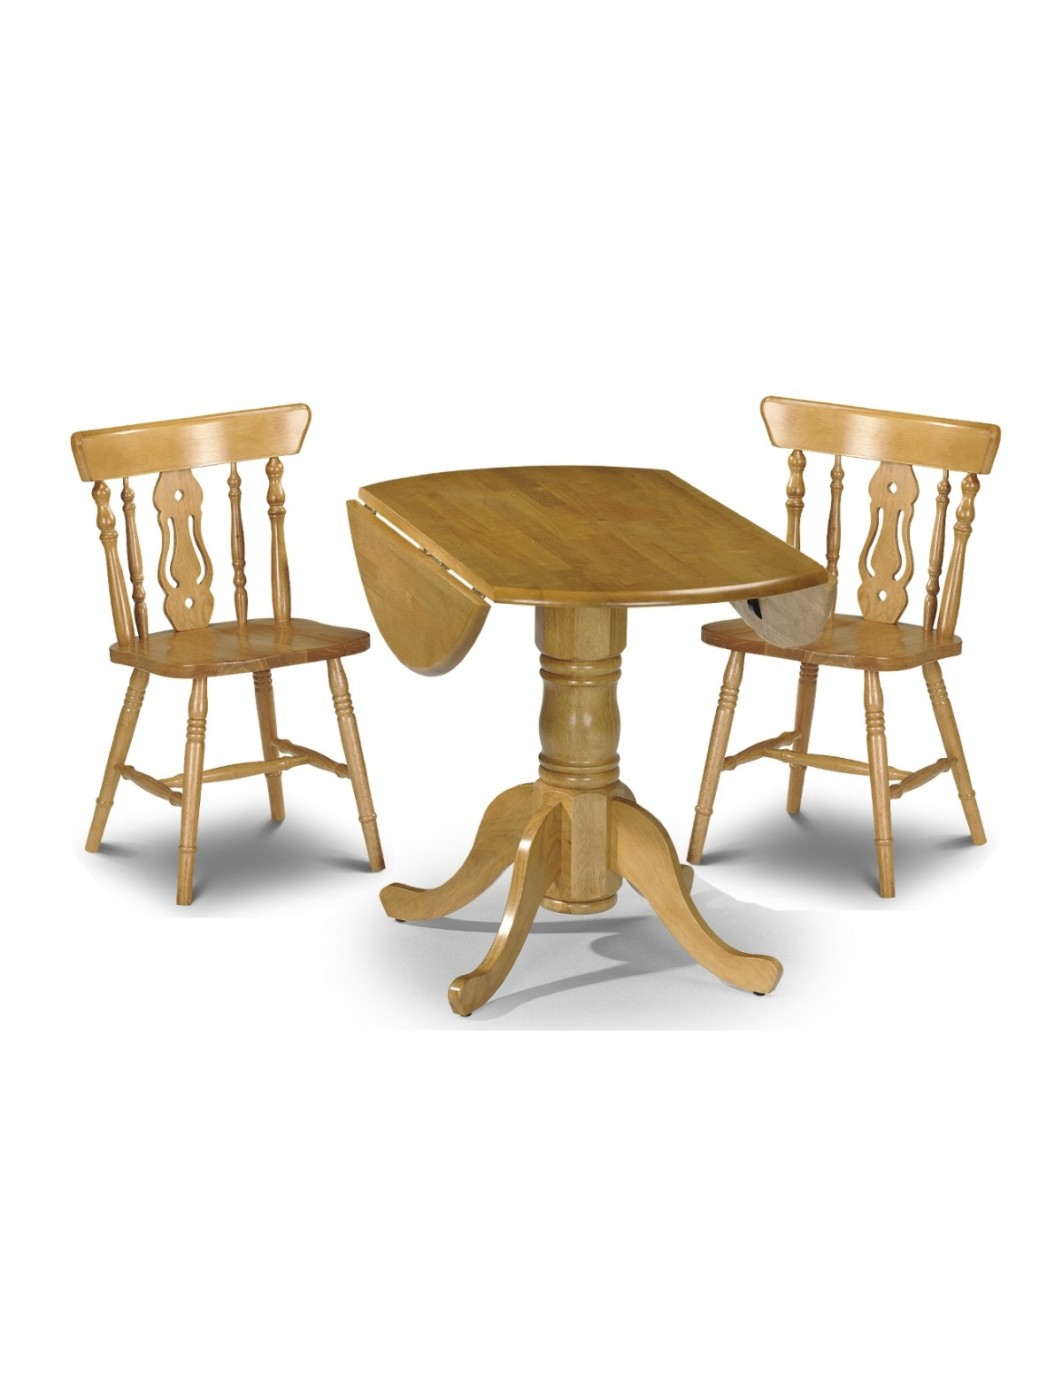 Dundee Dining Table And 4 Yorkshire Chairs DUN802